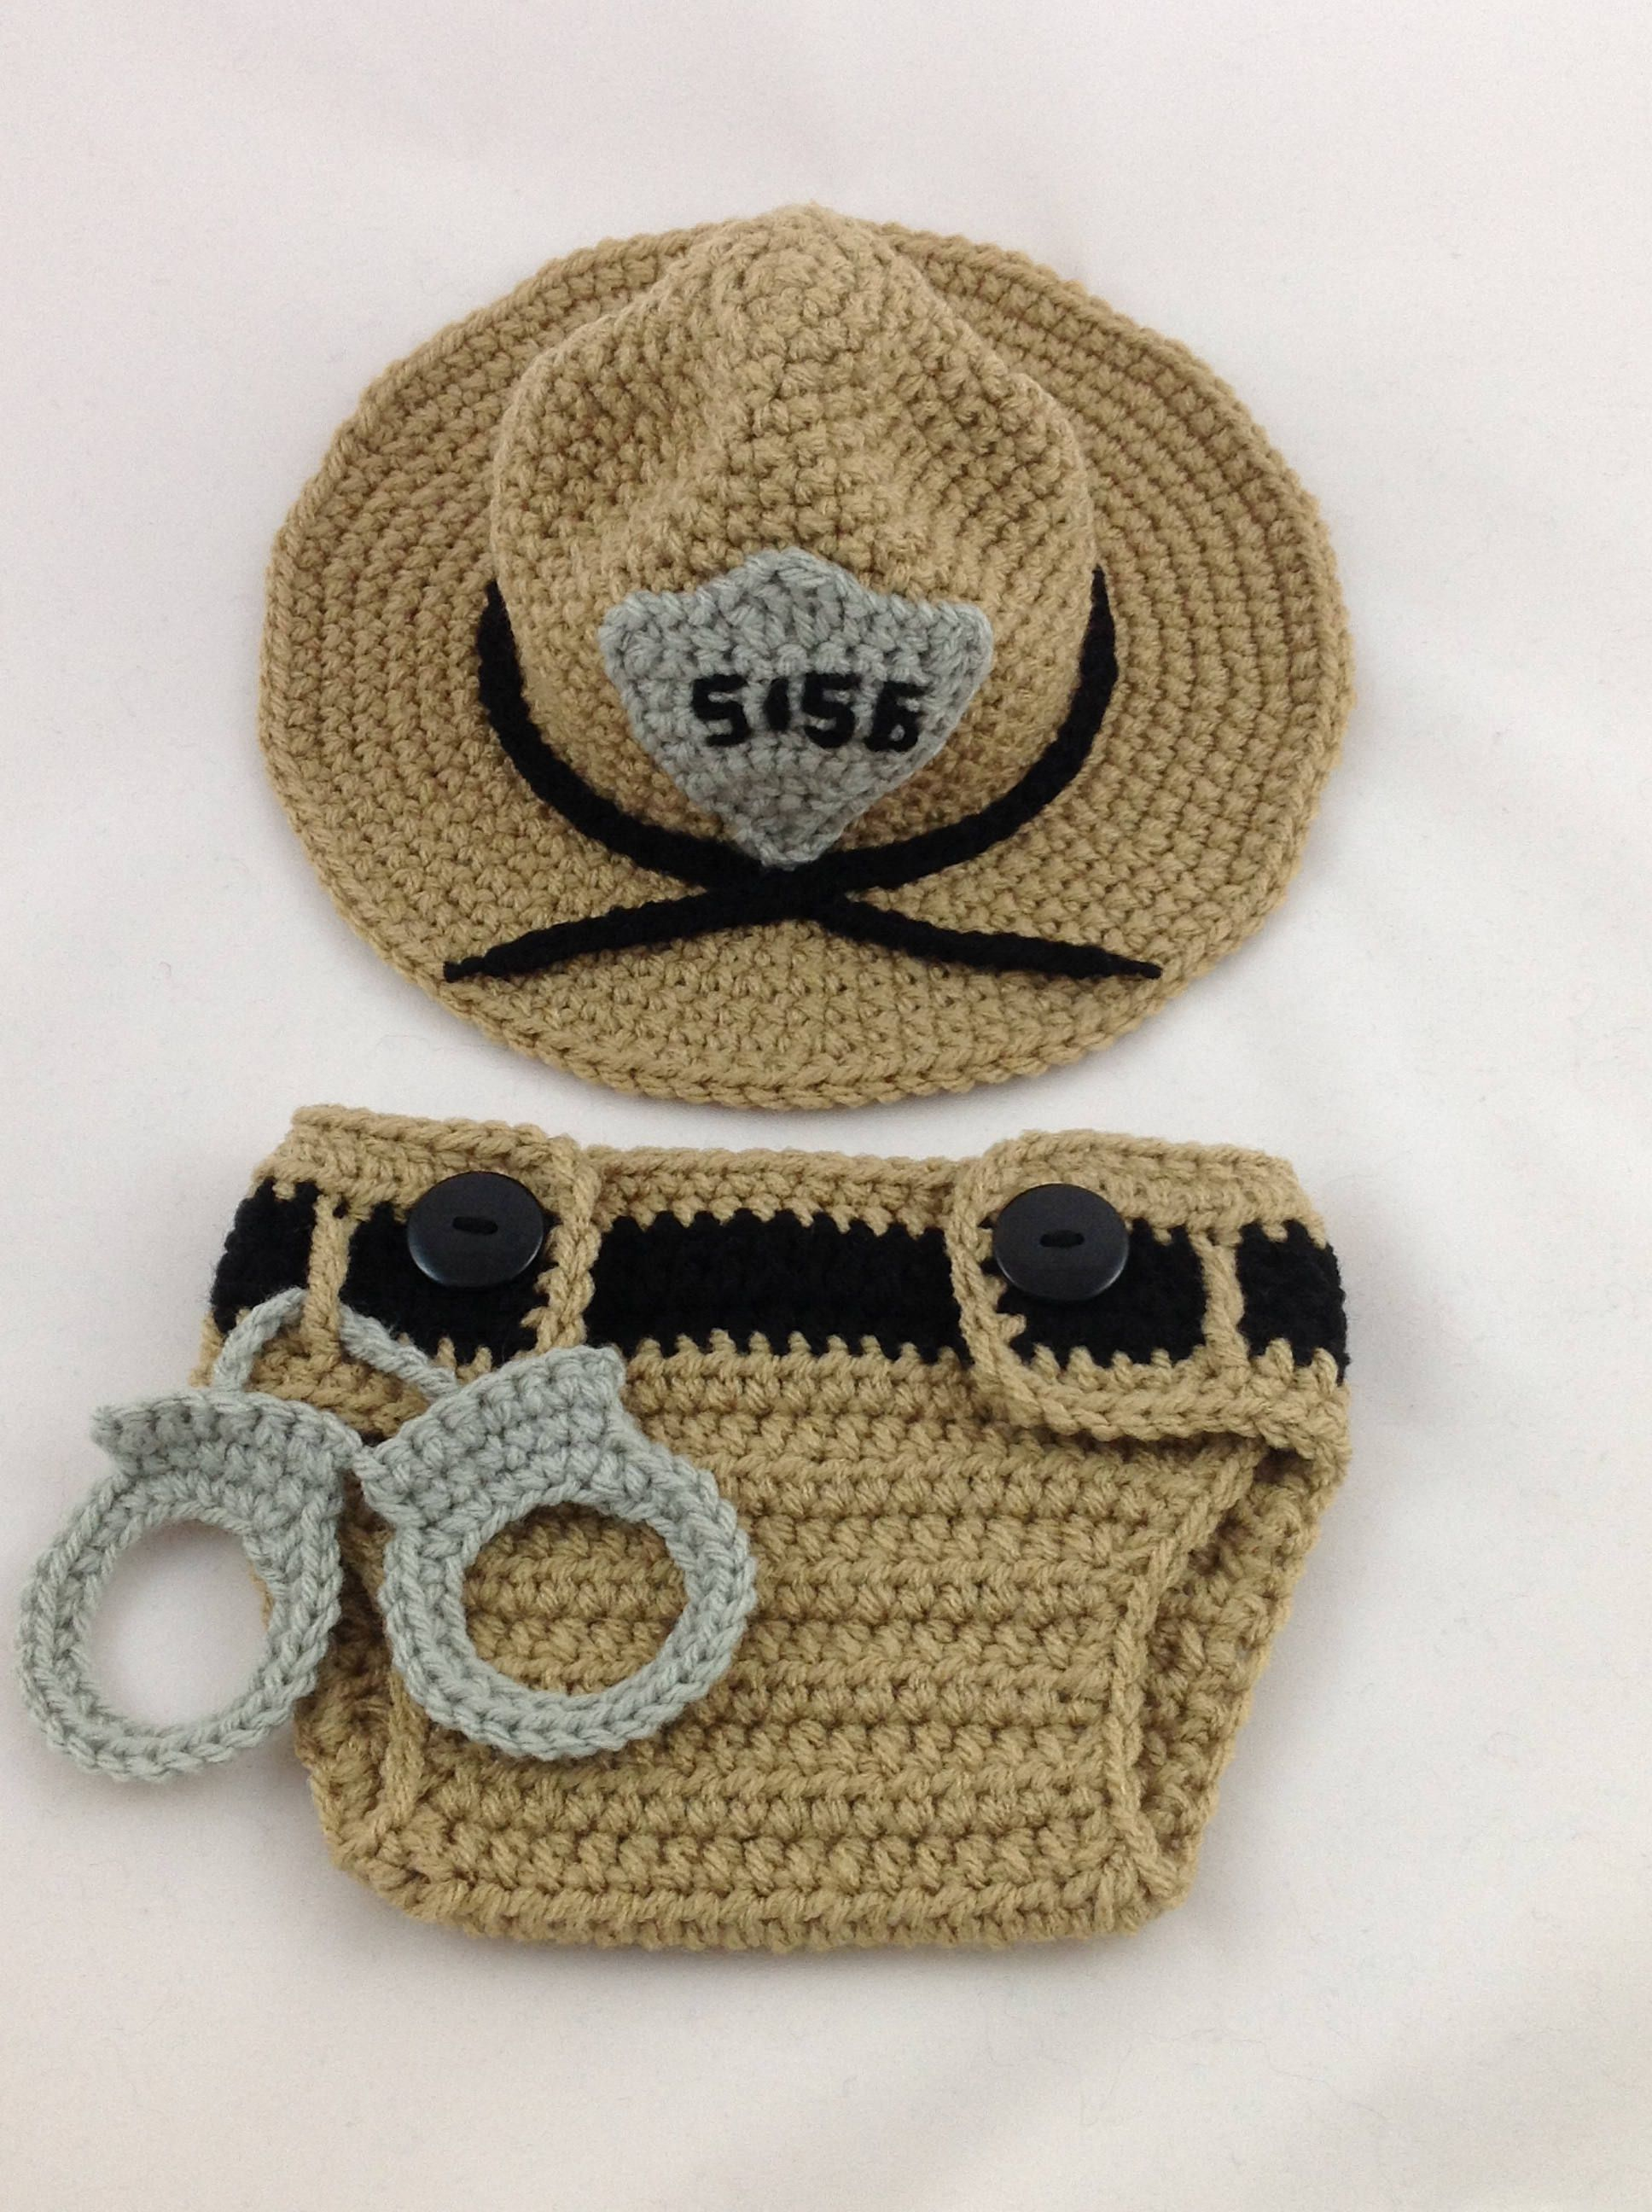 d7462d27599 State Trooper Baby Outfit - Police Officer Baby - Deputy Sheriff - Baby  Police Outfit - Park Ranger - Baby Police - Sheriff Deputy by  TimelessCrochetCraft ...